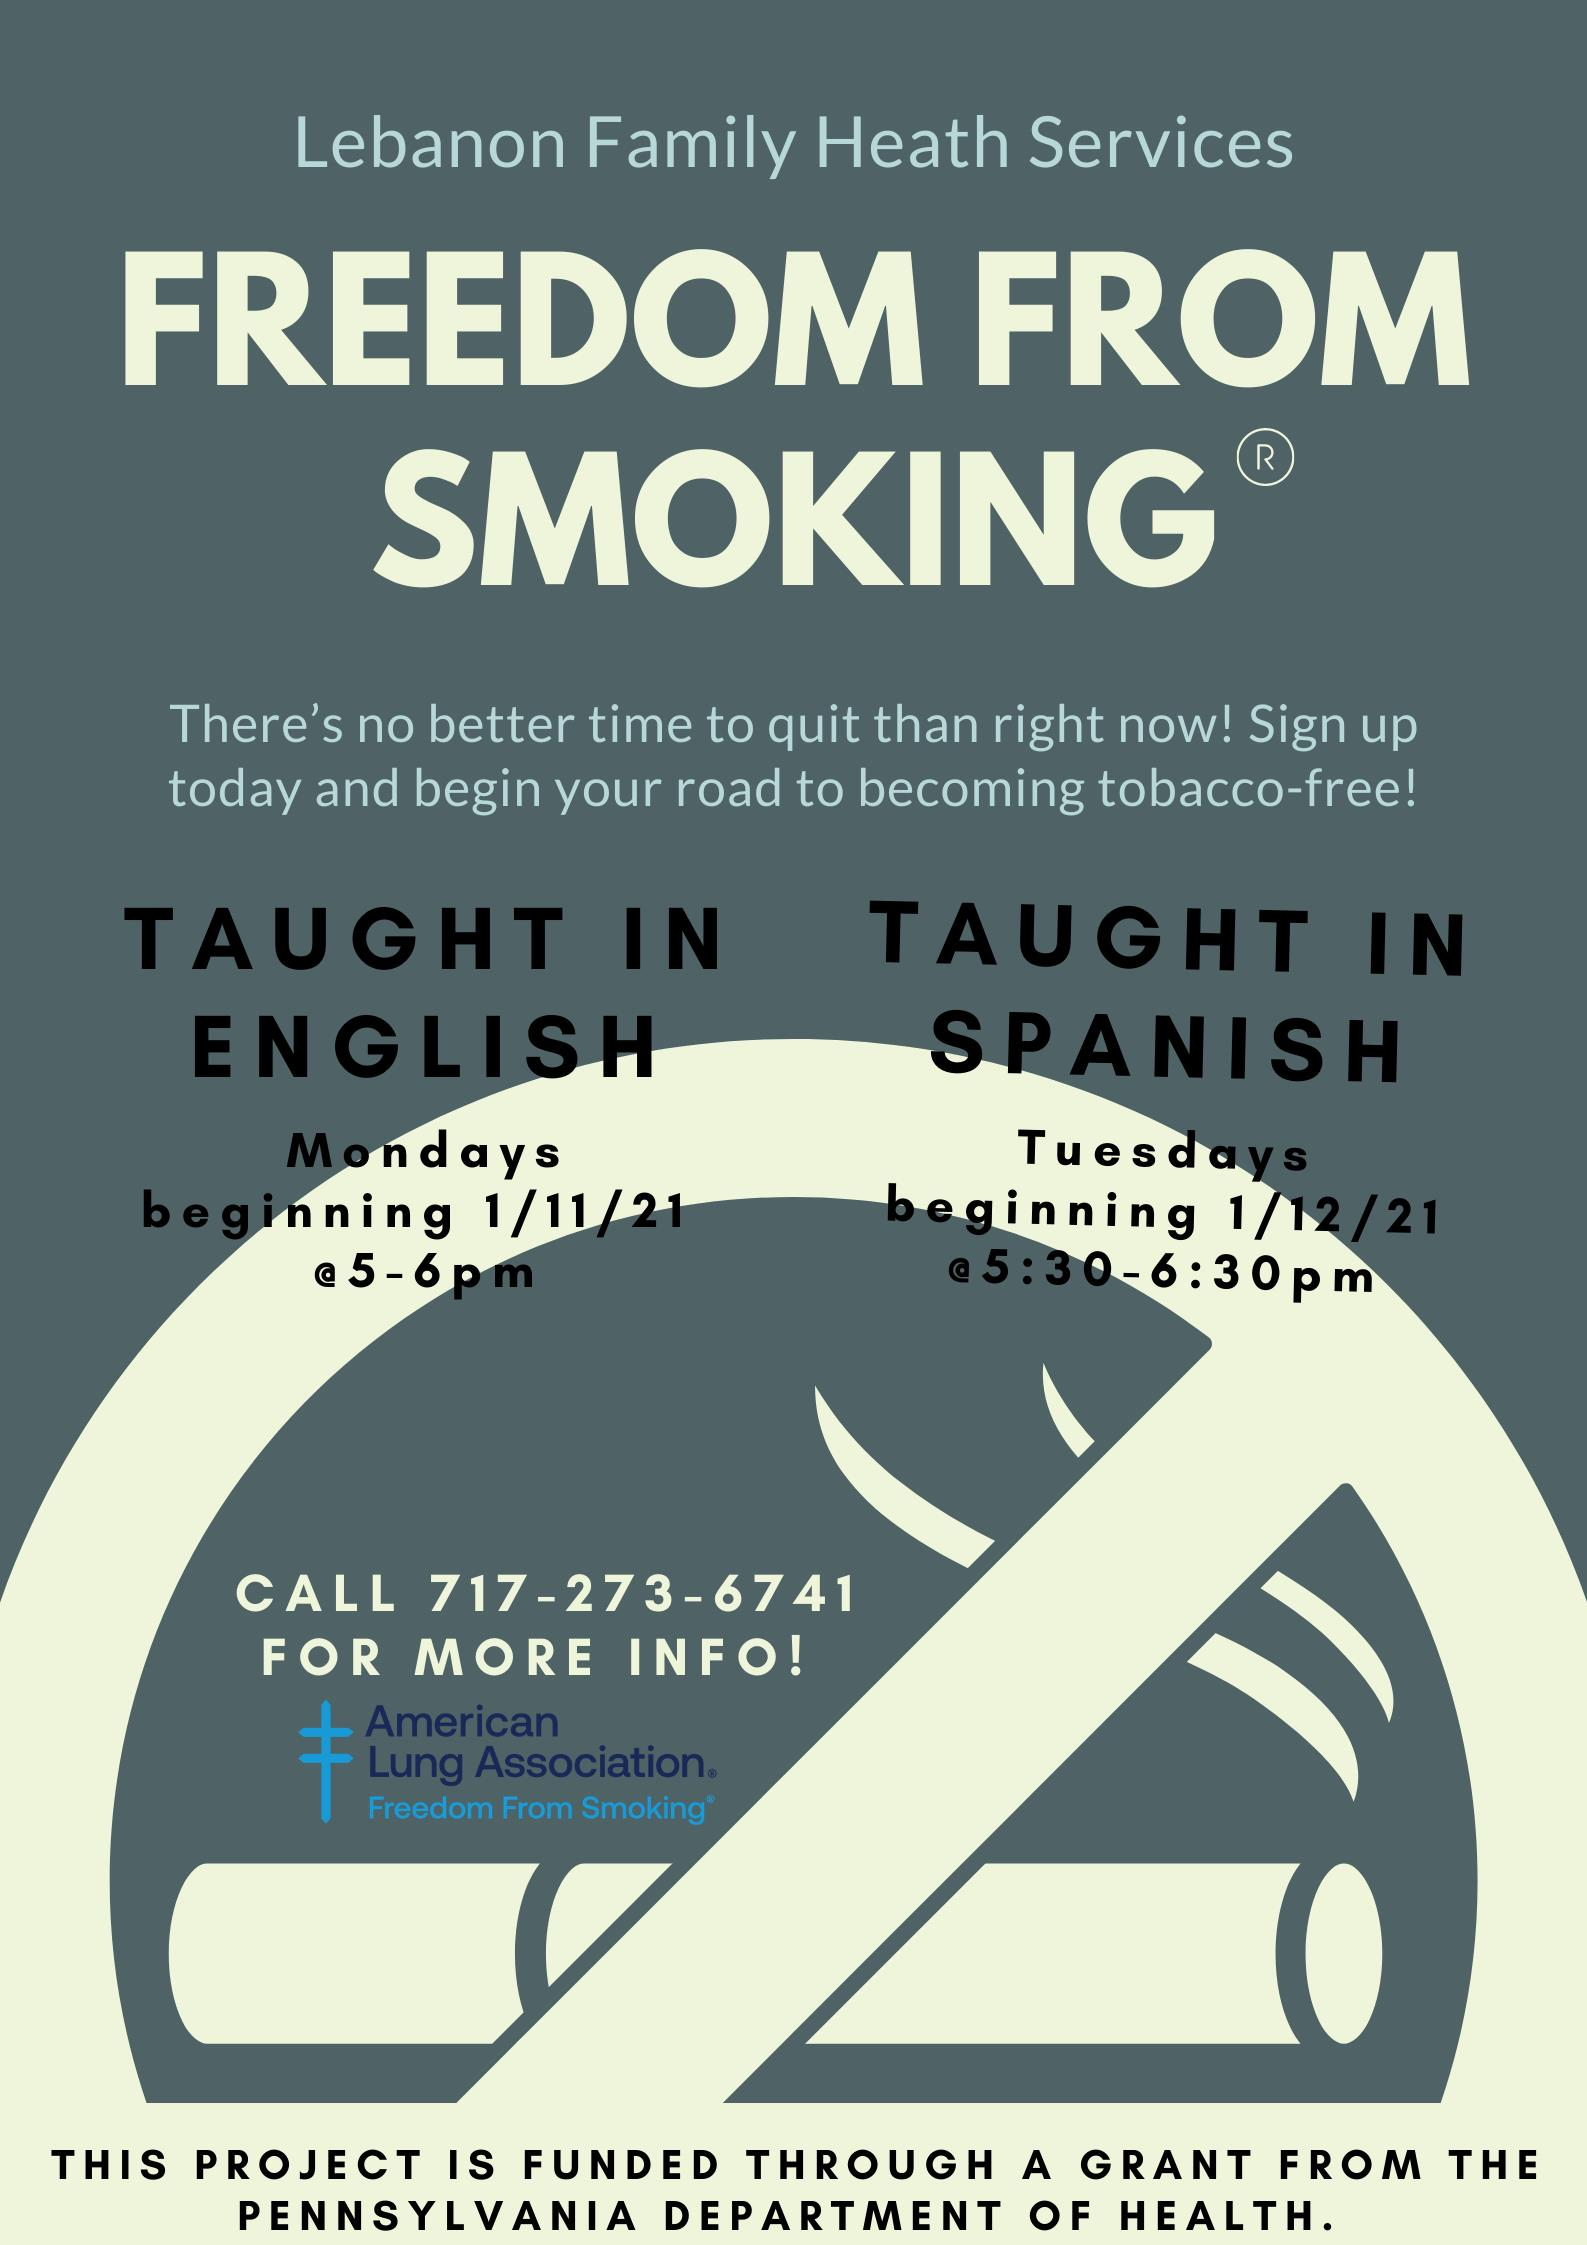 Freedom From Smoking Class (in English) @ Lebanon Family Health Services